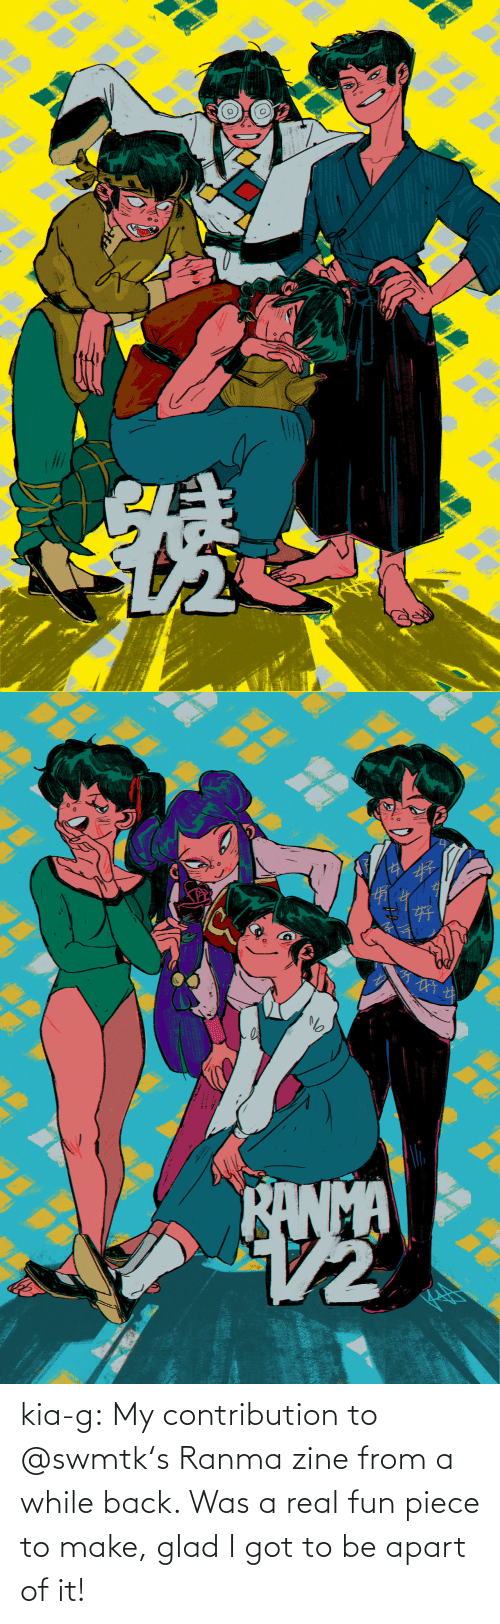 kia: kia-g:  My contribution to @swmtk's Ranma zine from a while back. Was a real fun piece to make, glad I got to be apart of it!